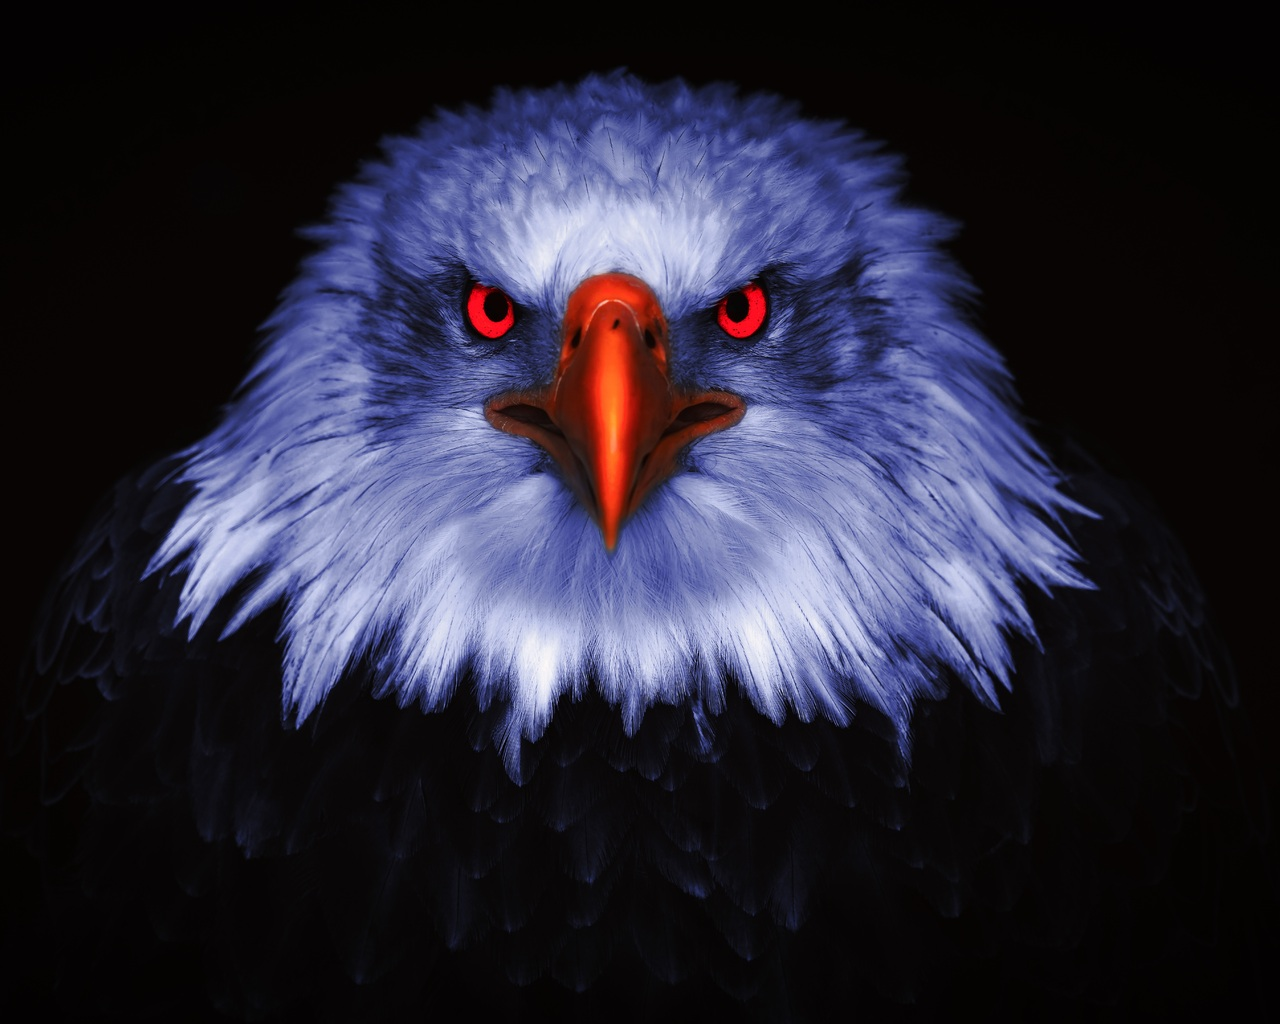 eagle-raptor-eyes-8k-xr.jpg